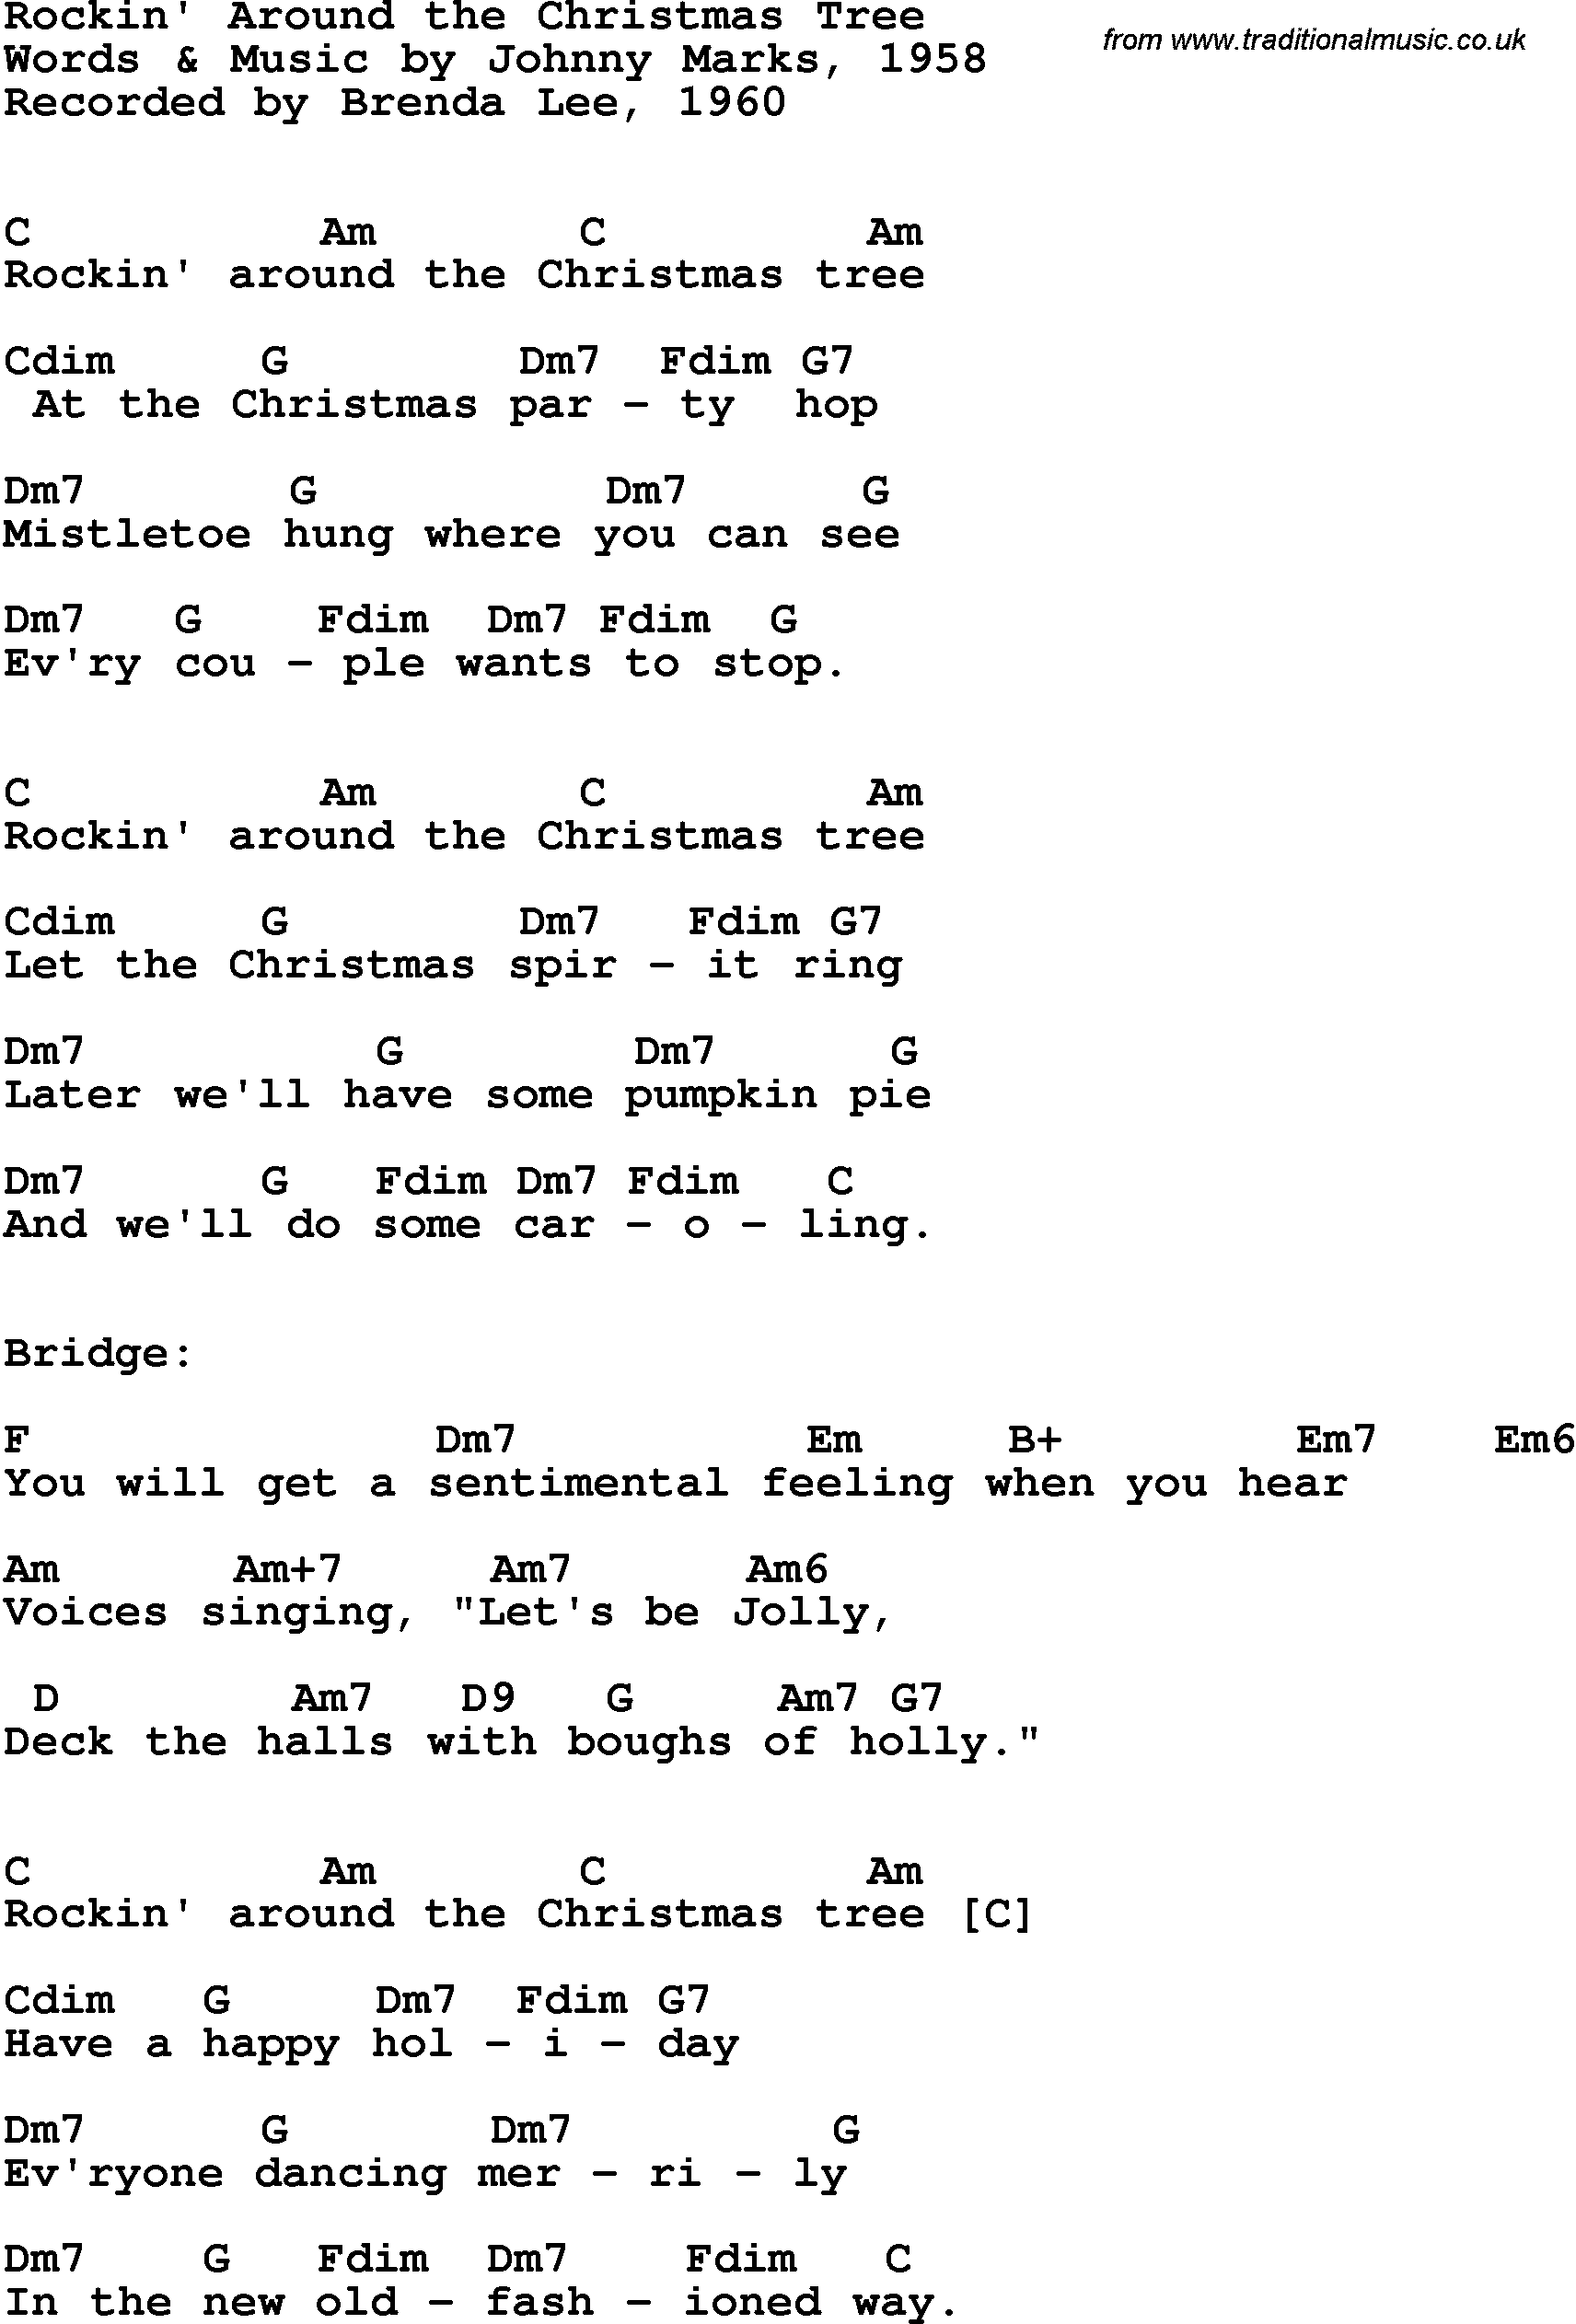 Guitar Chords For Rockin Around The Christmas Tree Brenda Lee 1960 59tu6efd Christmas Chords Christmas Songs Lyrics Christmas Lyrics